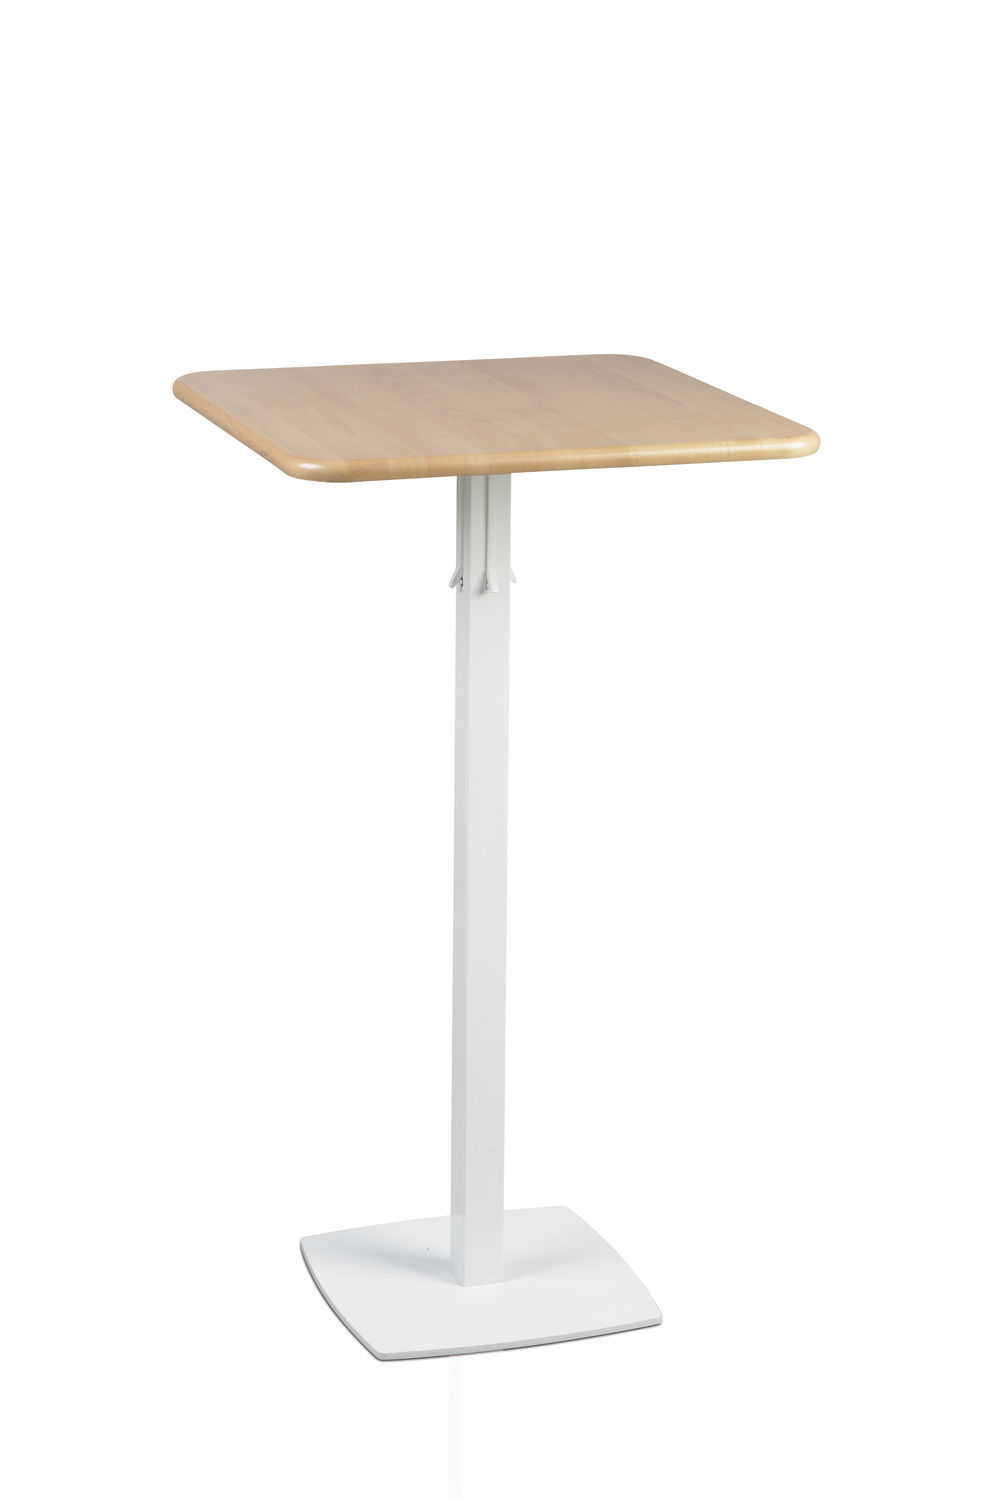 contemporary bistro table  glass  mdf  beech  totem  talin spa -  contemporary bistro table  glass  mdf  beech totem talin spa